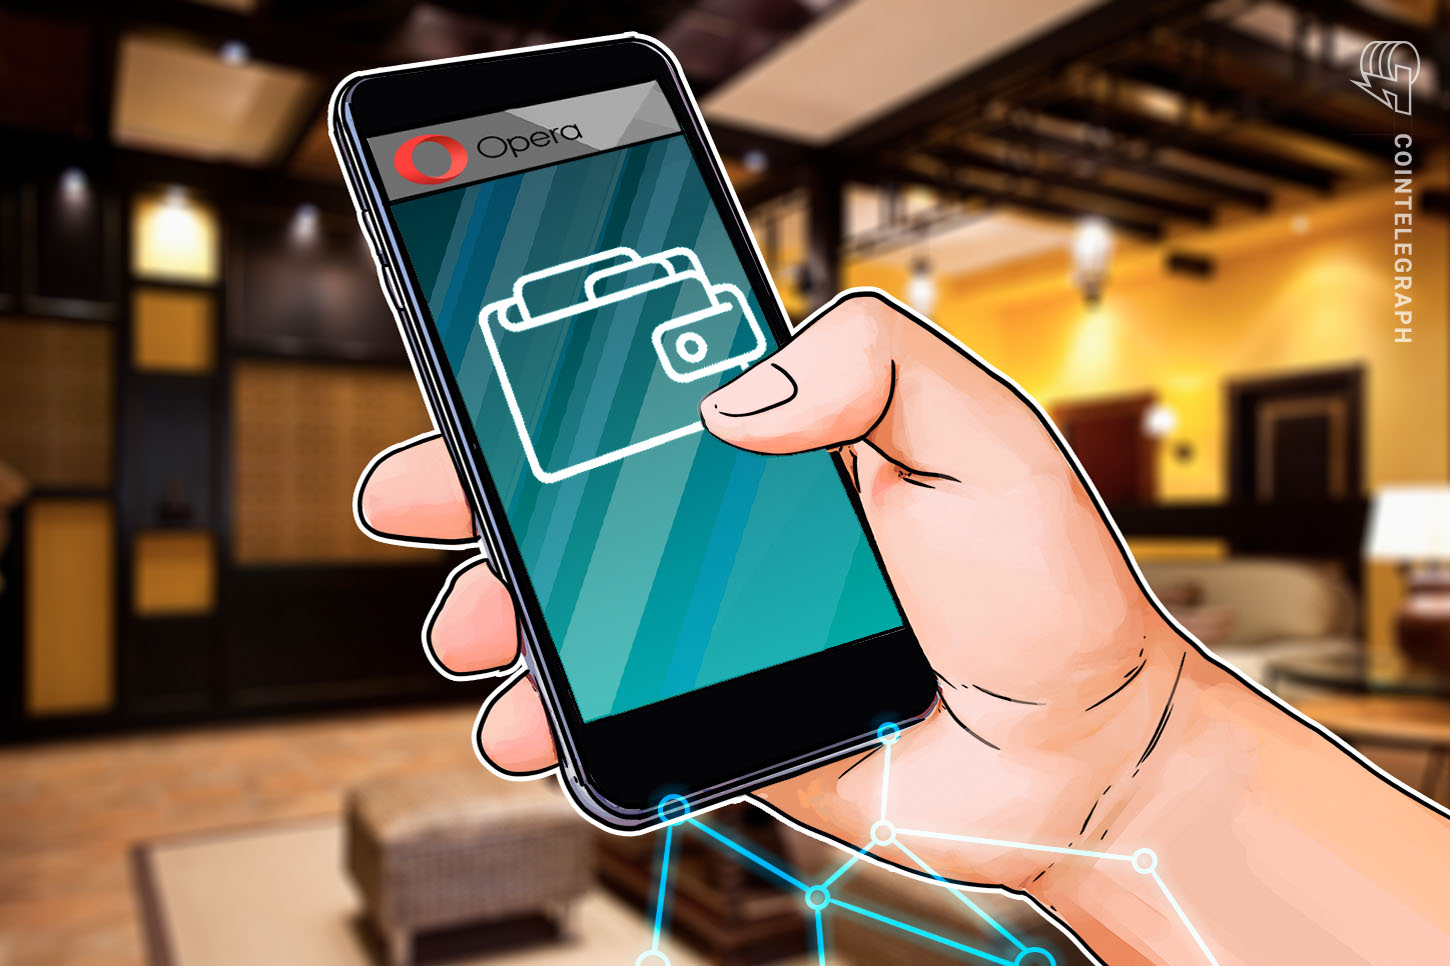 Opera announces support for Celo stablecoins in its crypto wallet app